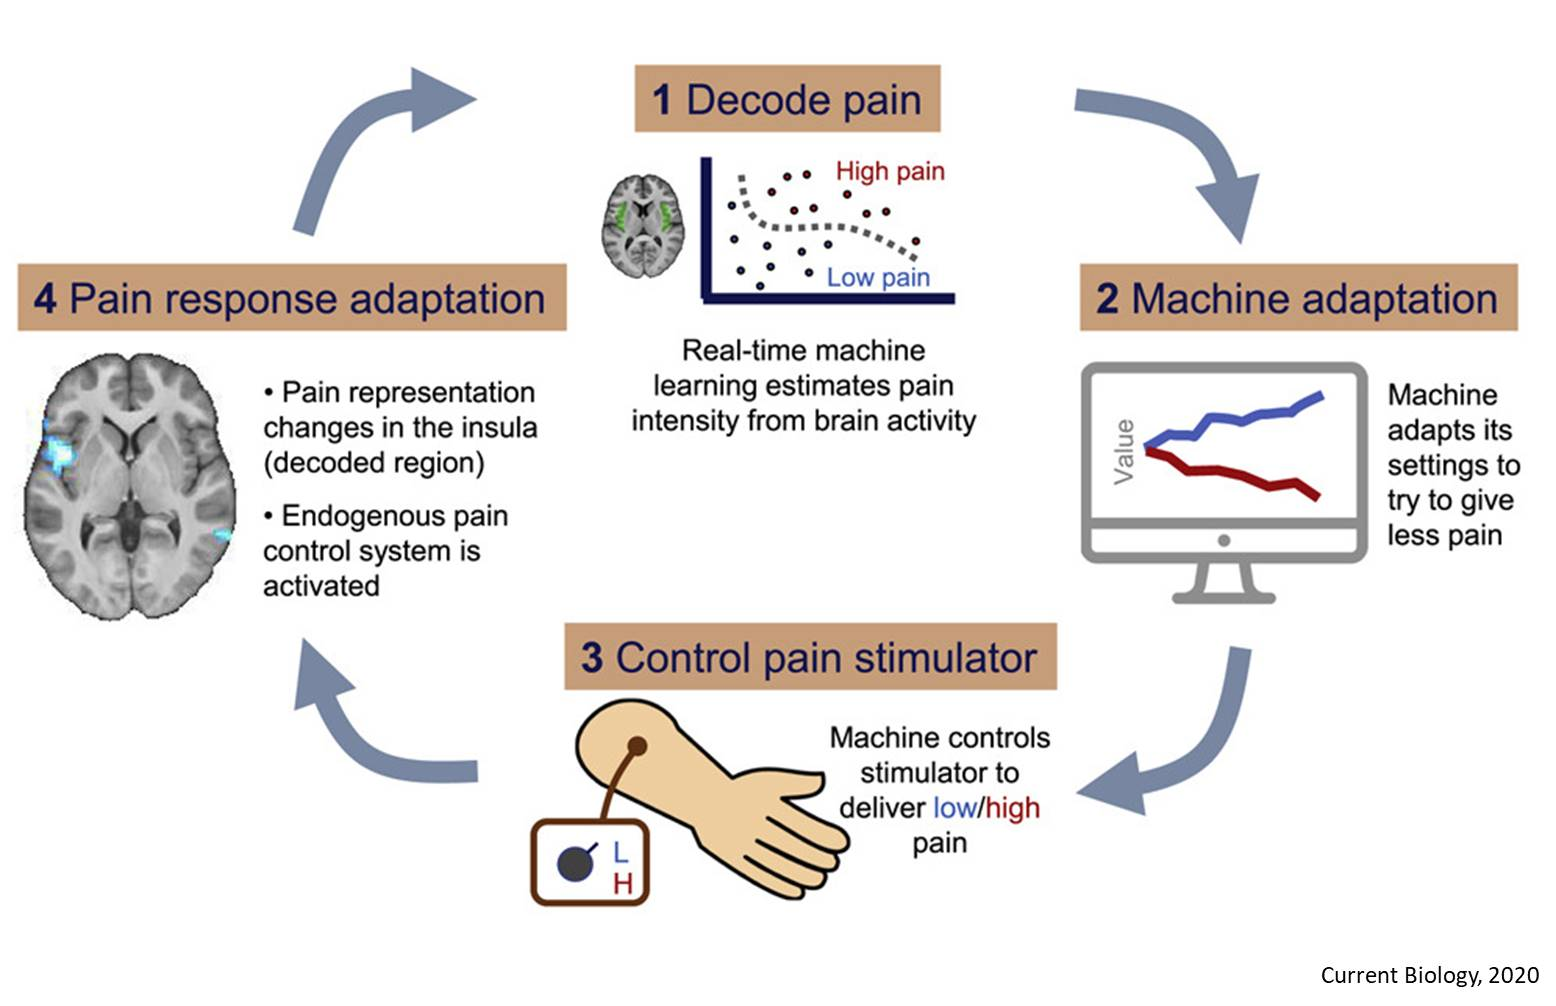 Pain Control by Co-adaptive Learning in a BrainMachine Interface